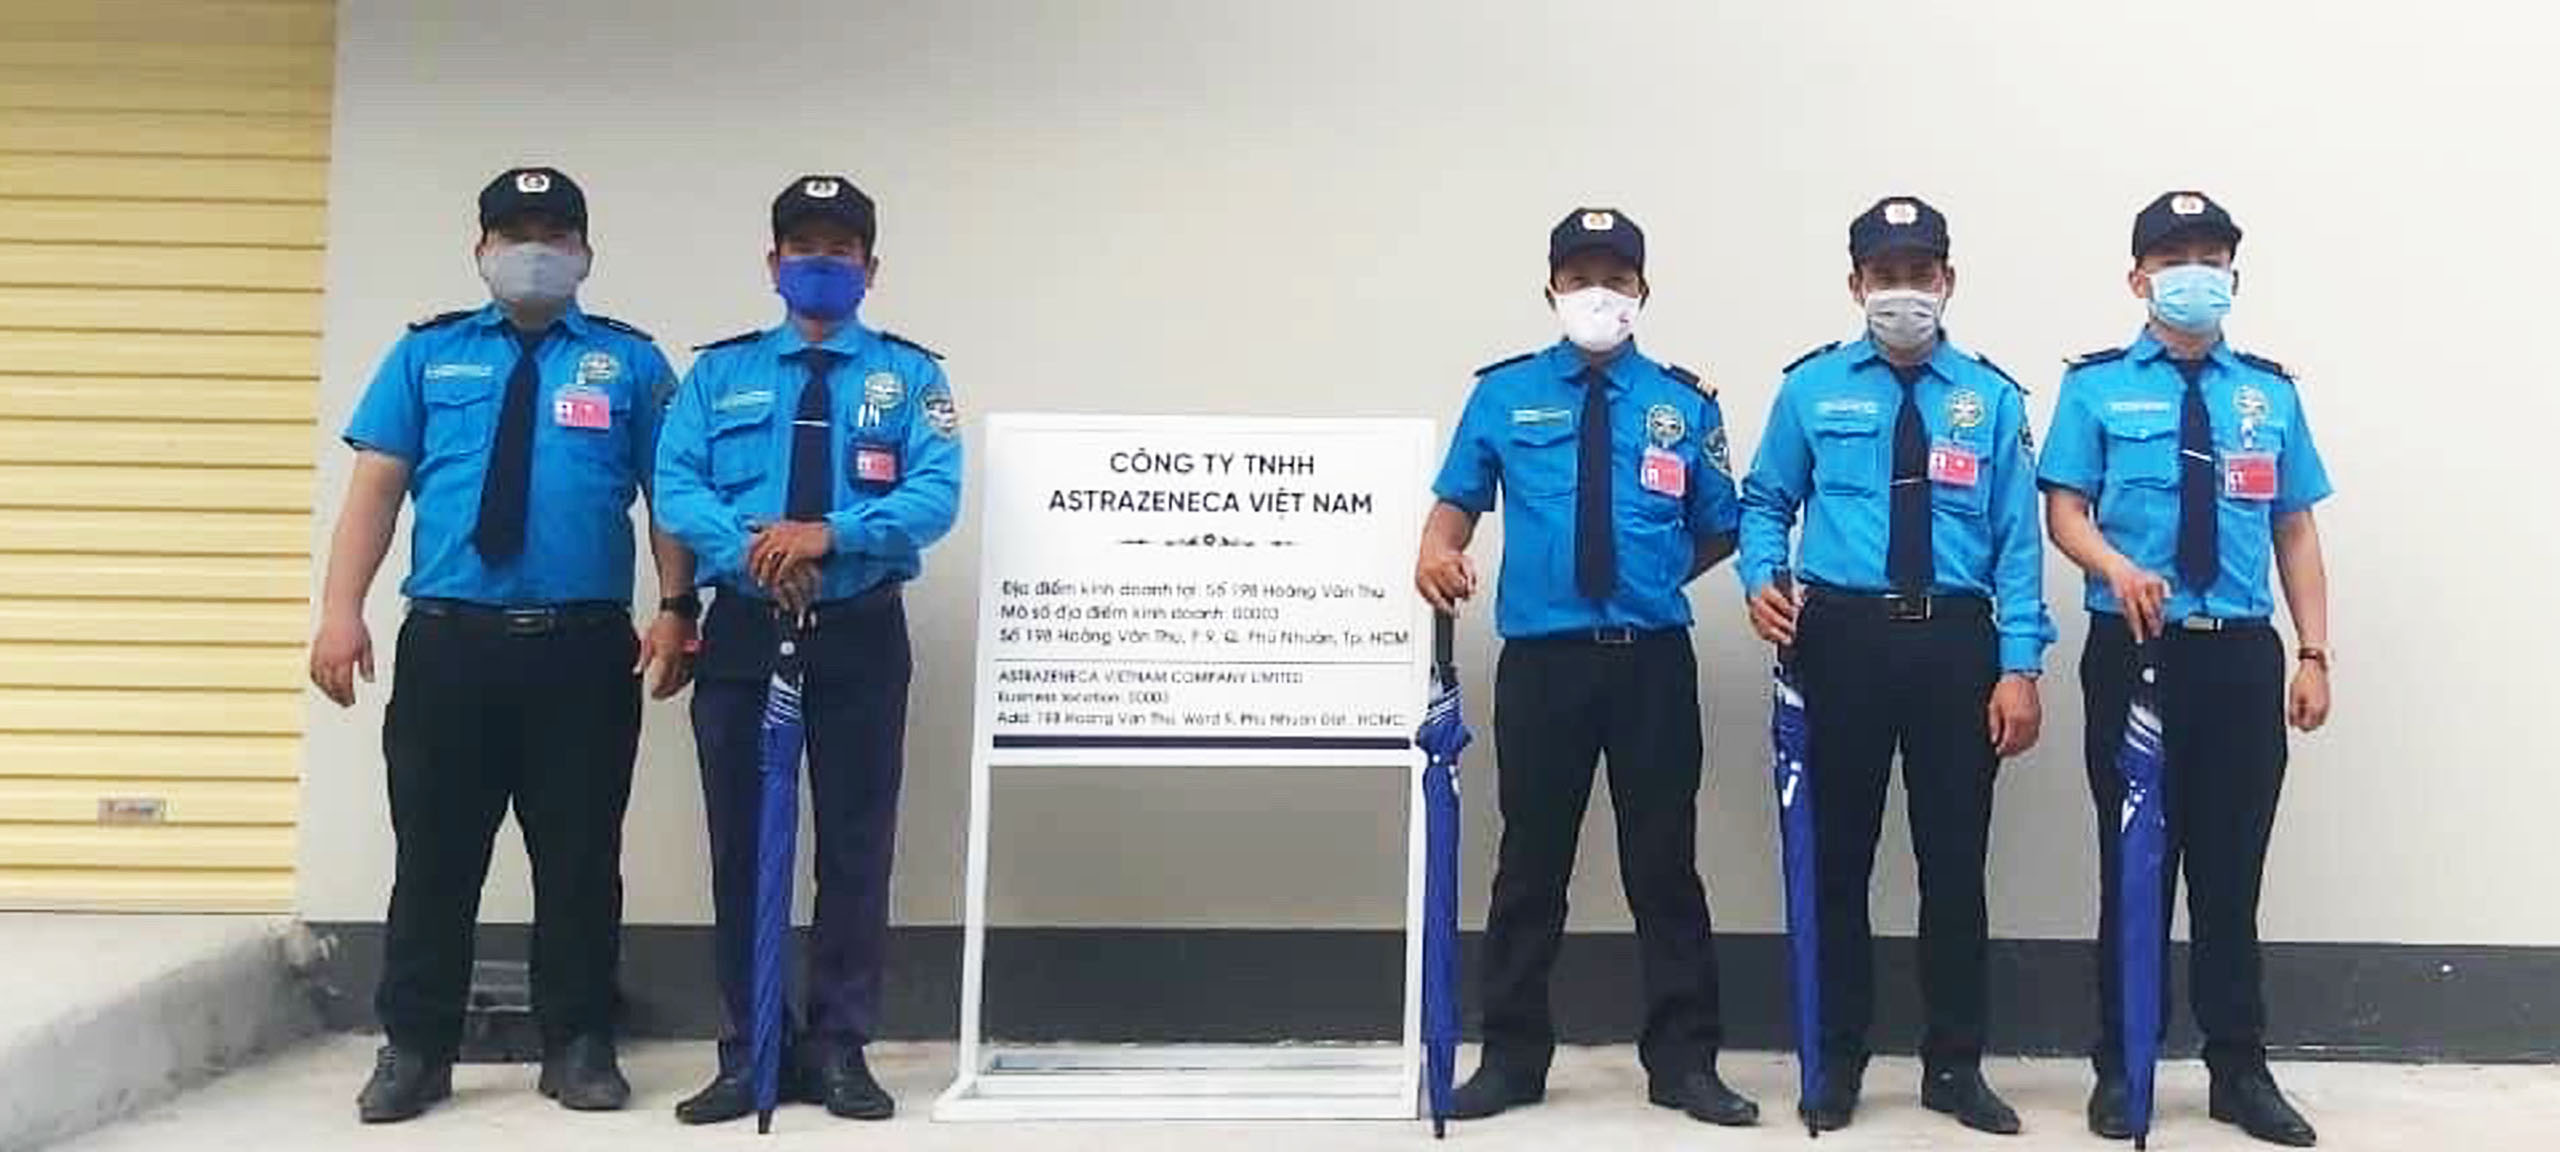 First batch of Covid-19 vaccine arrives in Vietnam with Night & Day Security